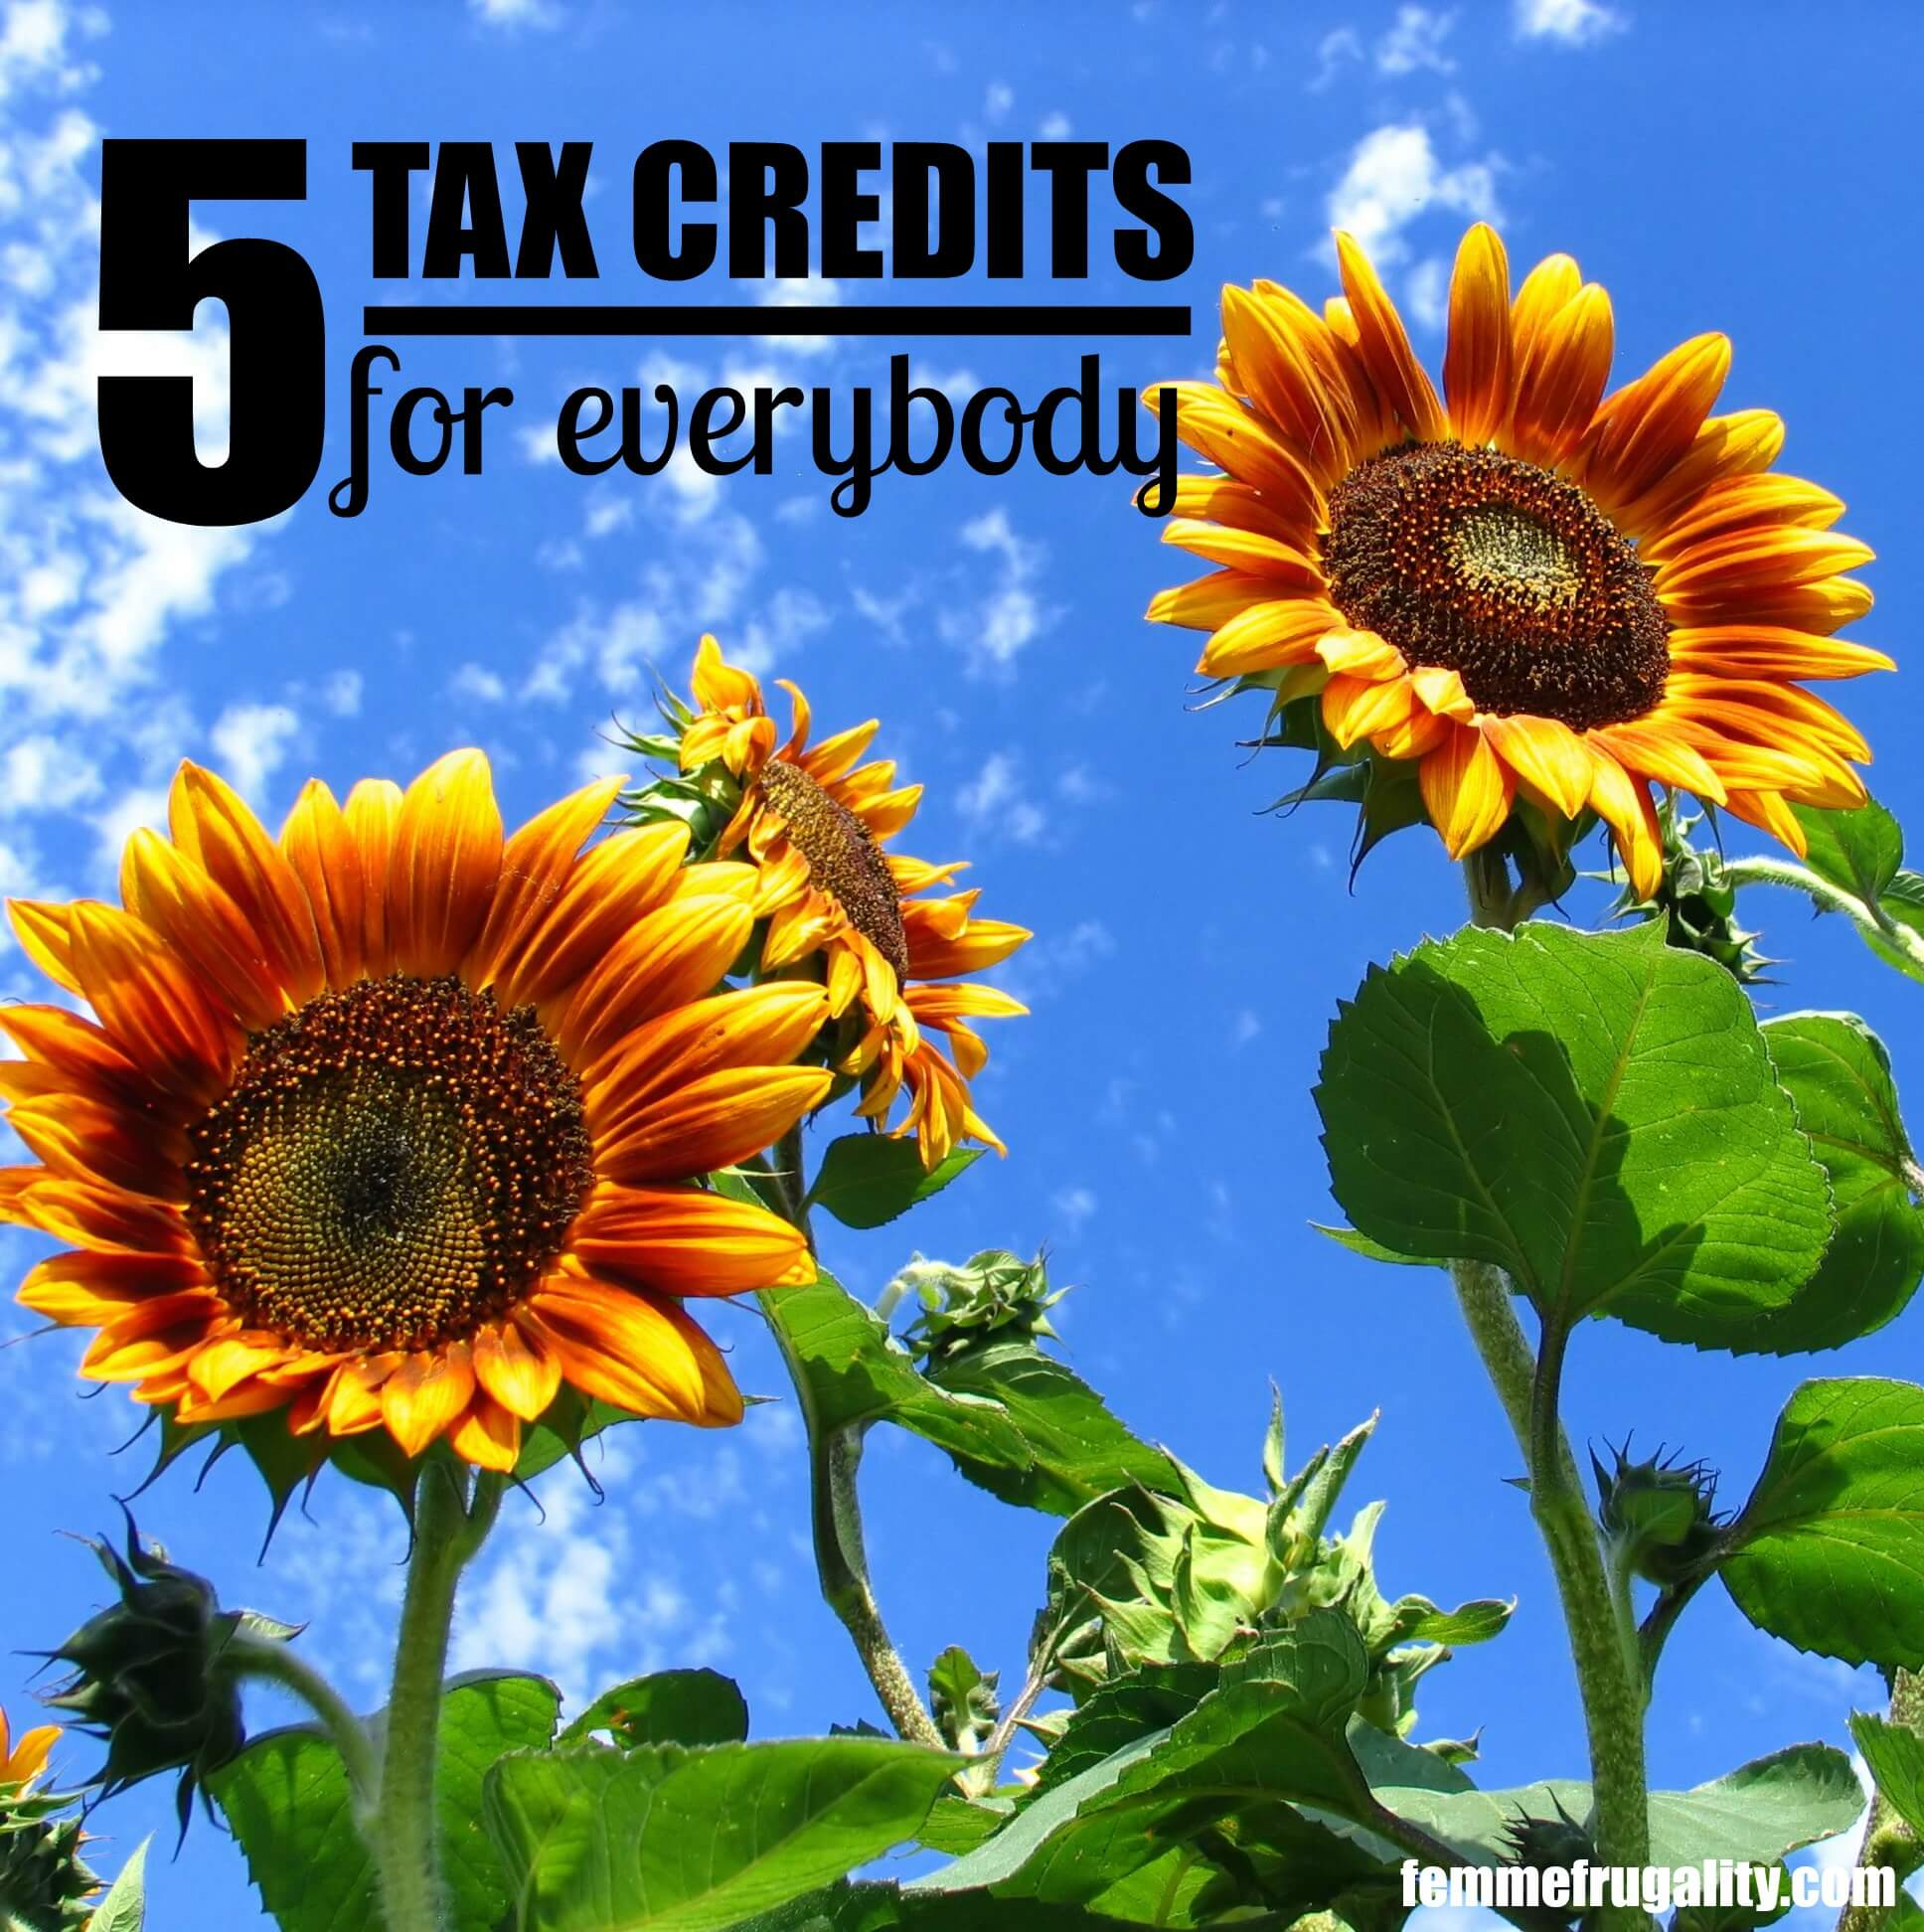 Are you filing for everything you qualify for? Here's 5 important credits to check out this tax season.